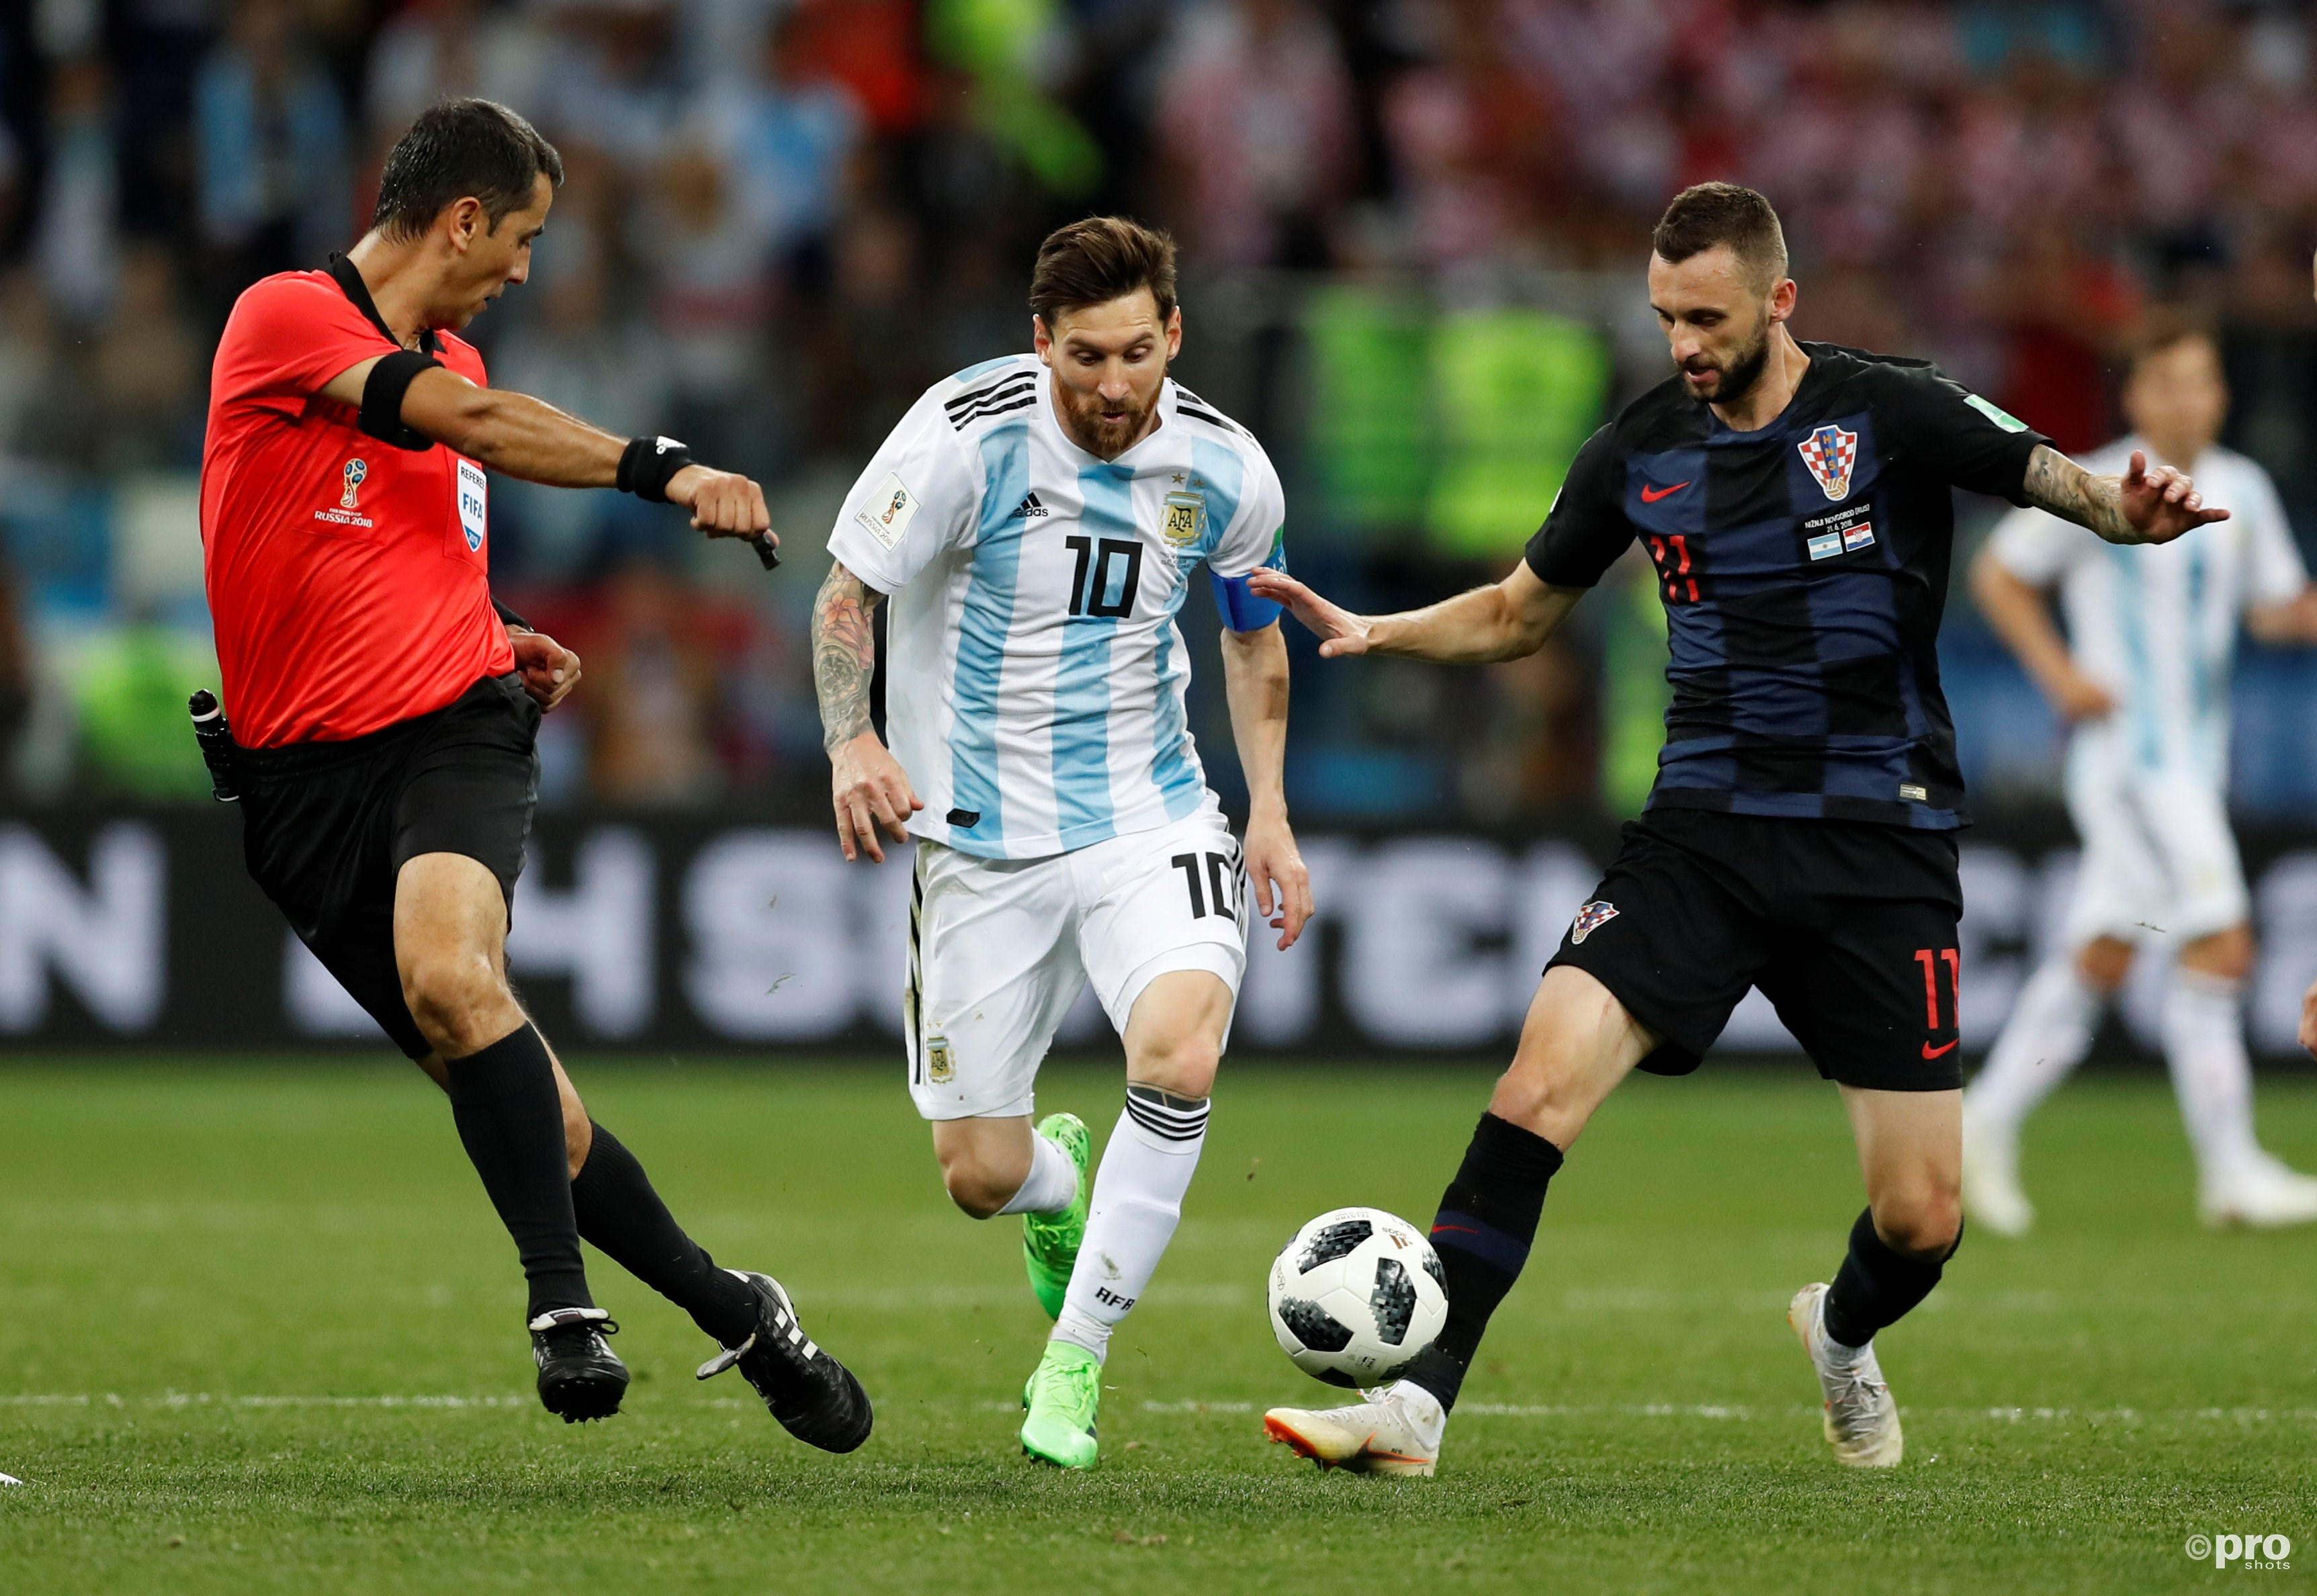 Lionel Messi in action with Croatia's Marcelo Brozovic. (PRO SHOTS/Action Images)